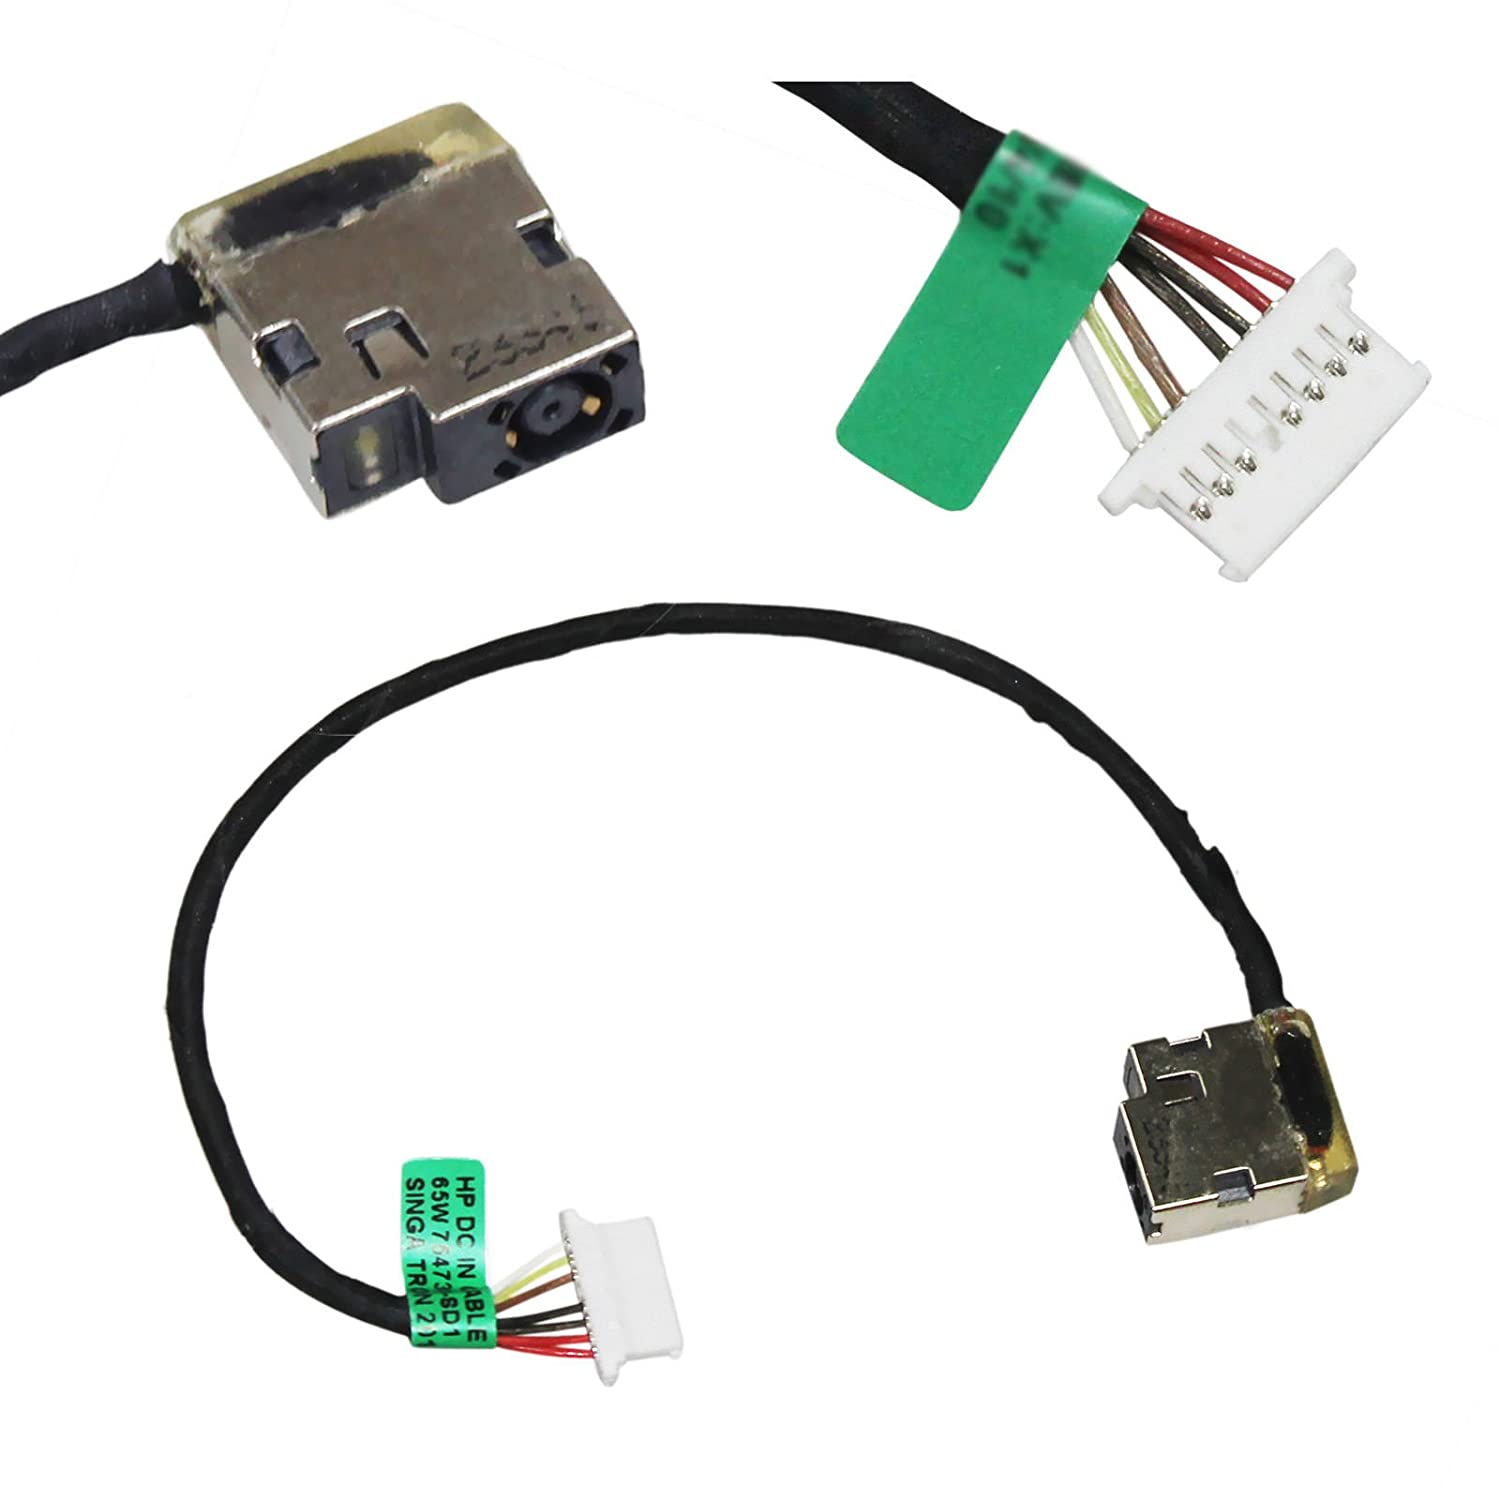 DC Power Jack Cable Harness Replacement for HP 15-AF 15-AF131DX 799736-T57 Series